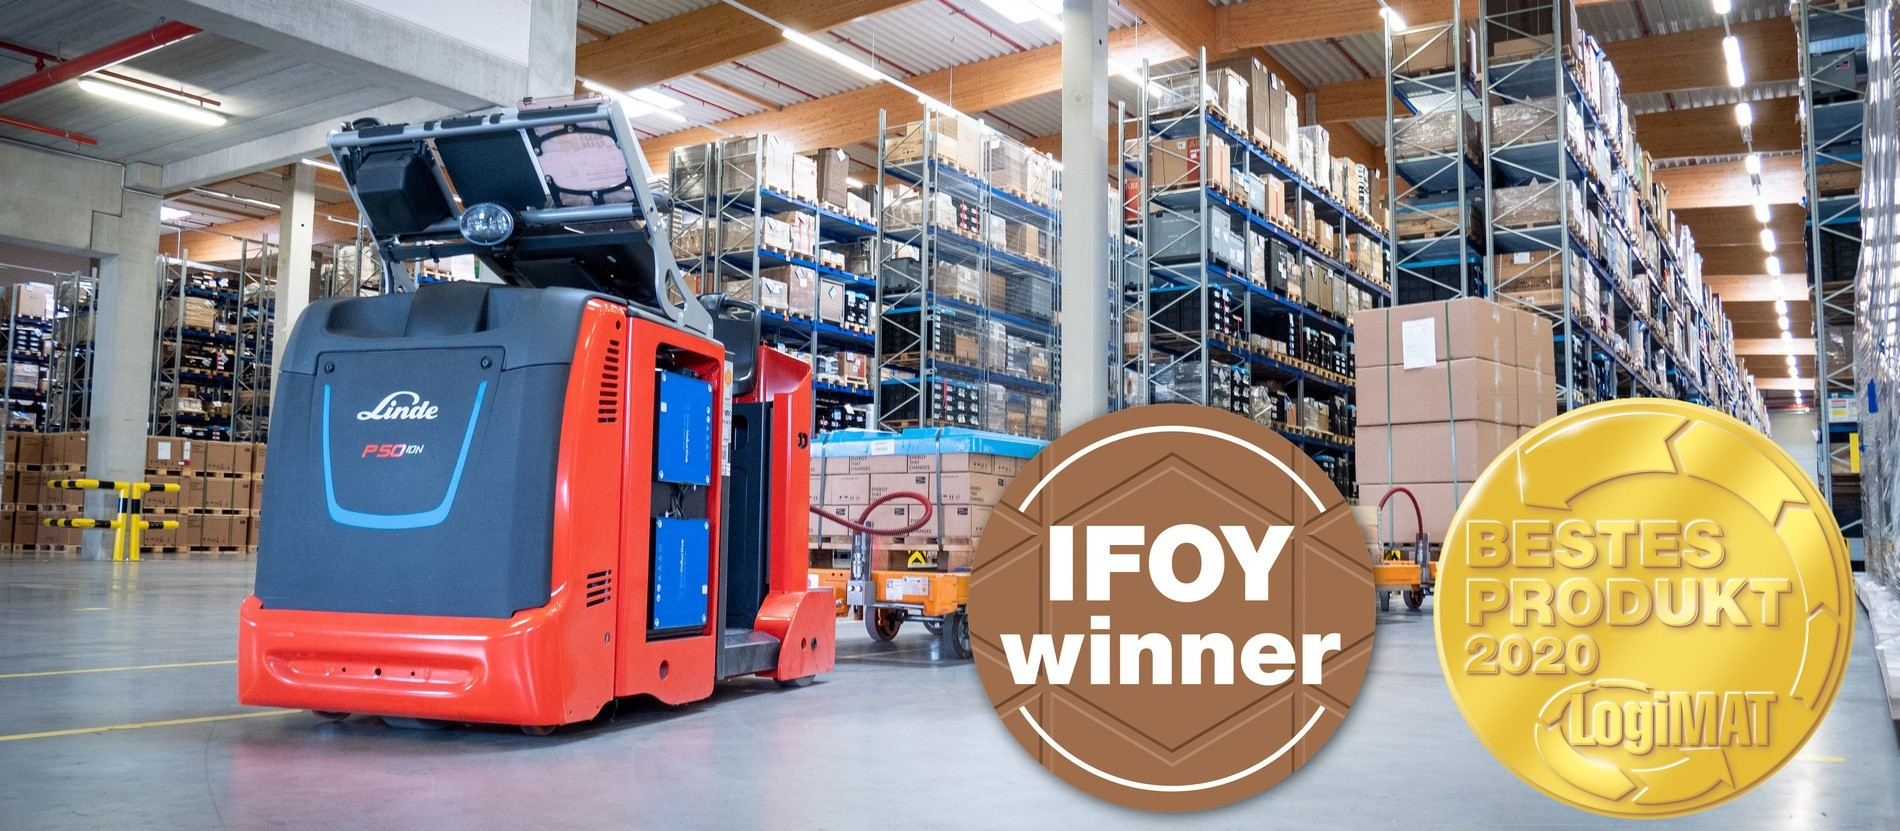 Wiferion SMA Routenzug Winner IFOY and Logimat Award